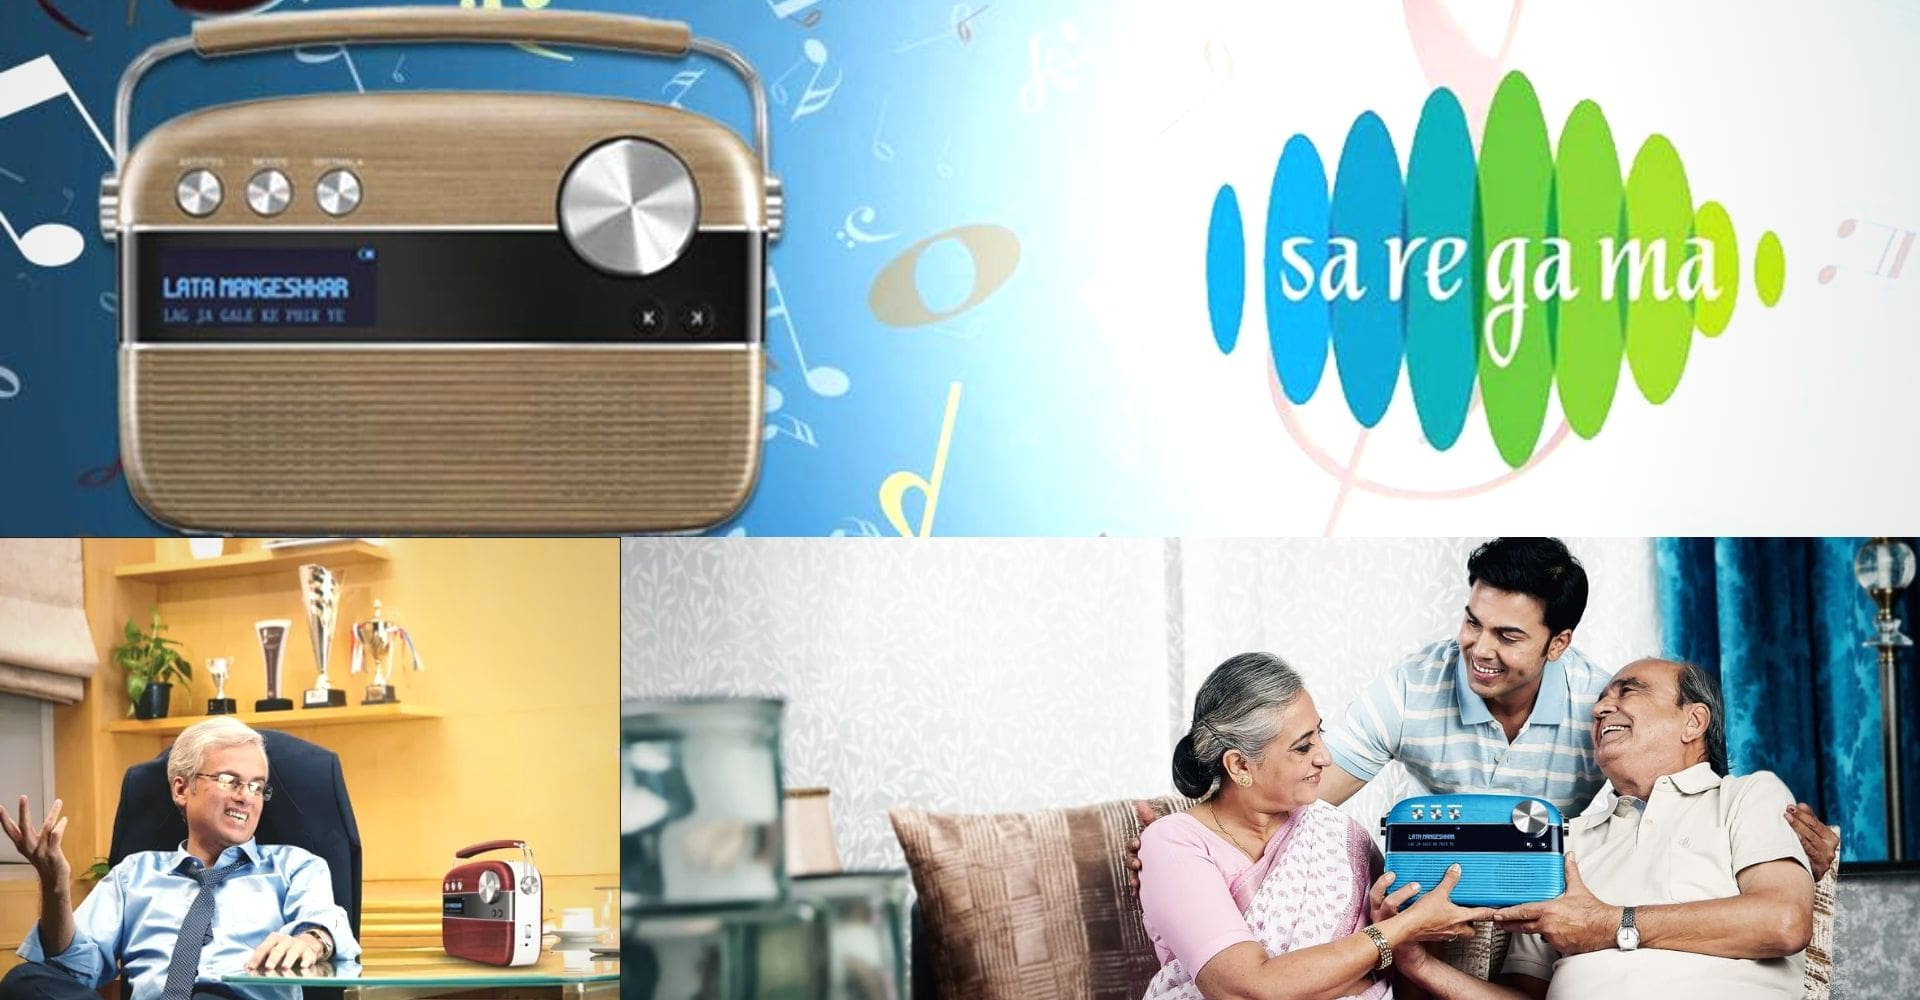 Saregama Carvaan Review || Portable Music Player with 5000 Preloaded Songs, FM/BT/AUX